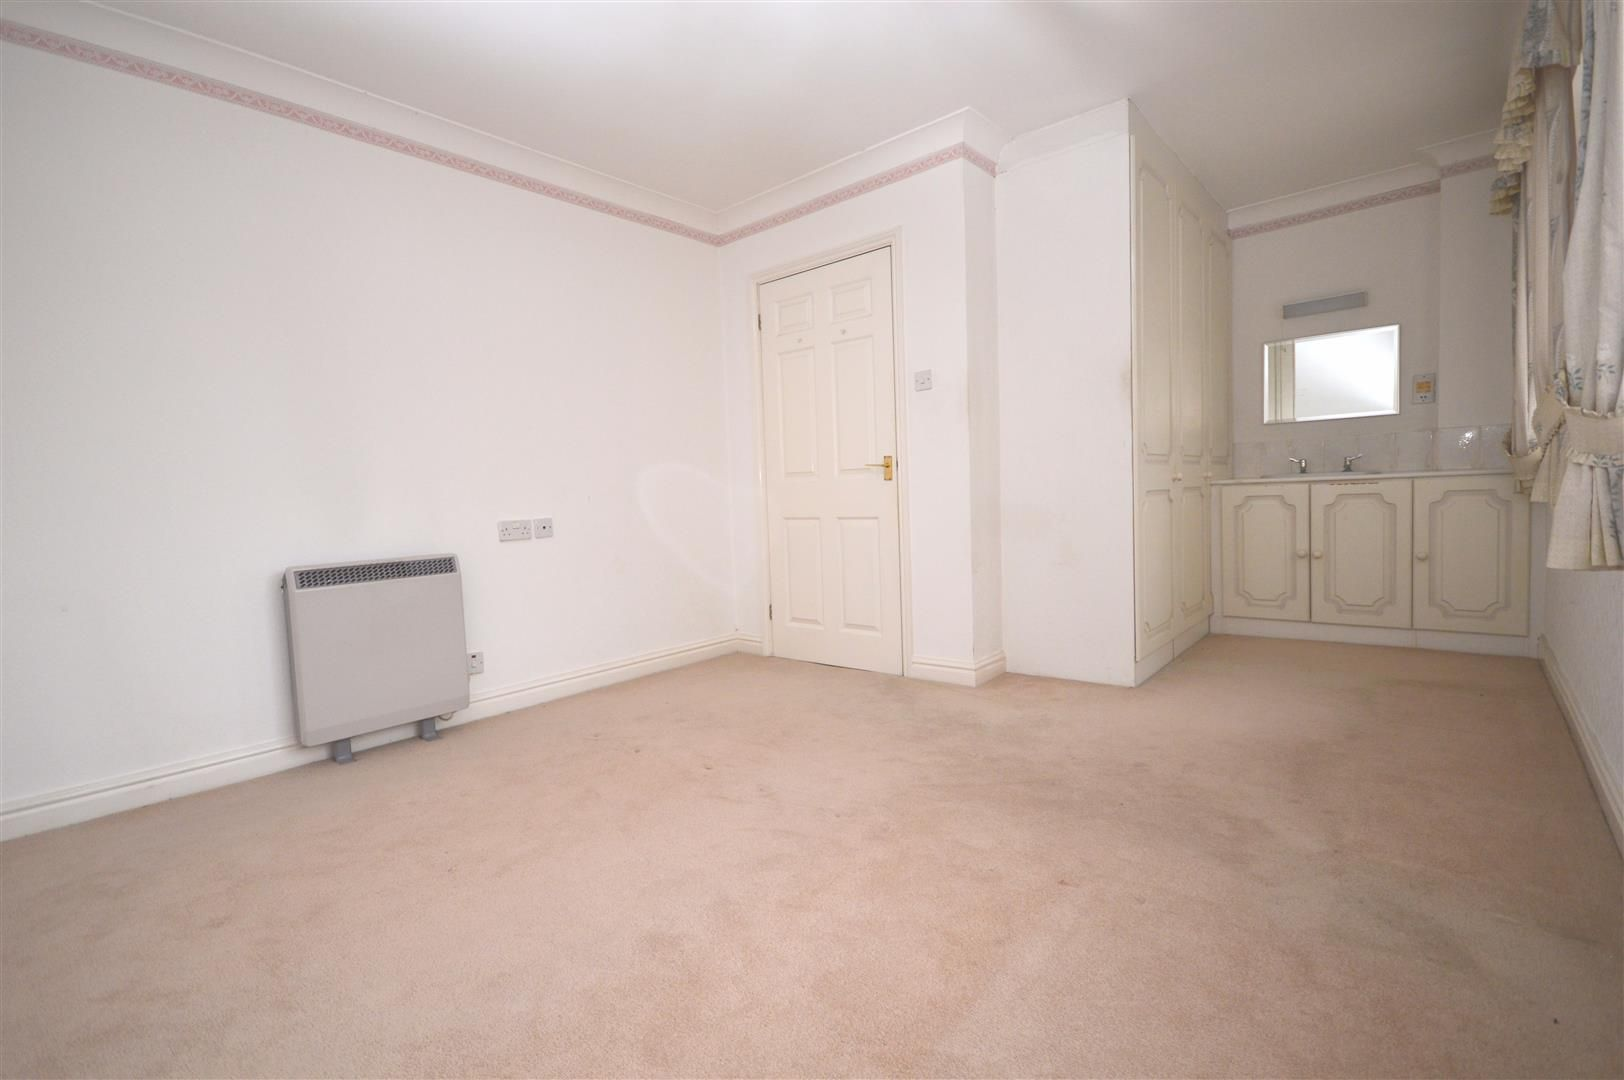 2 bed end of terrace for sale in Belmont 3